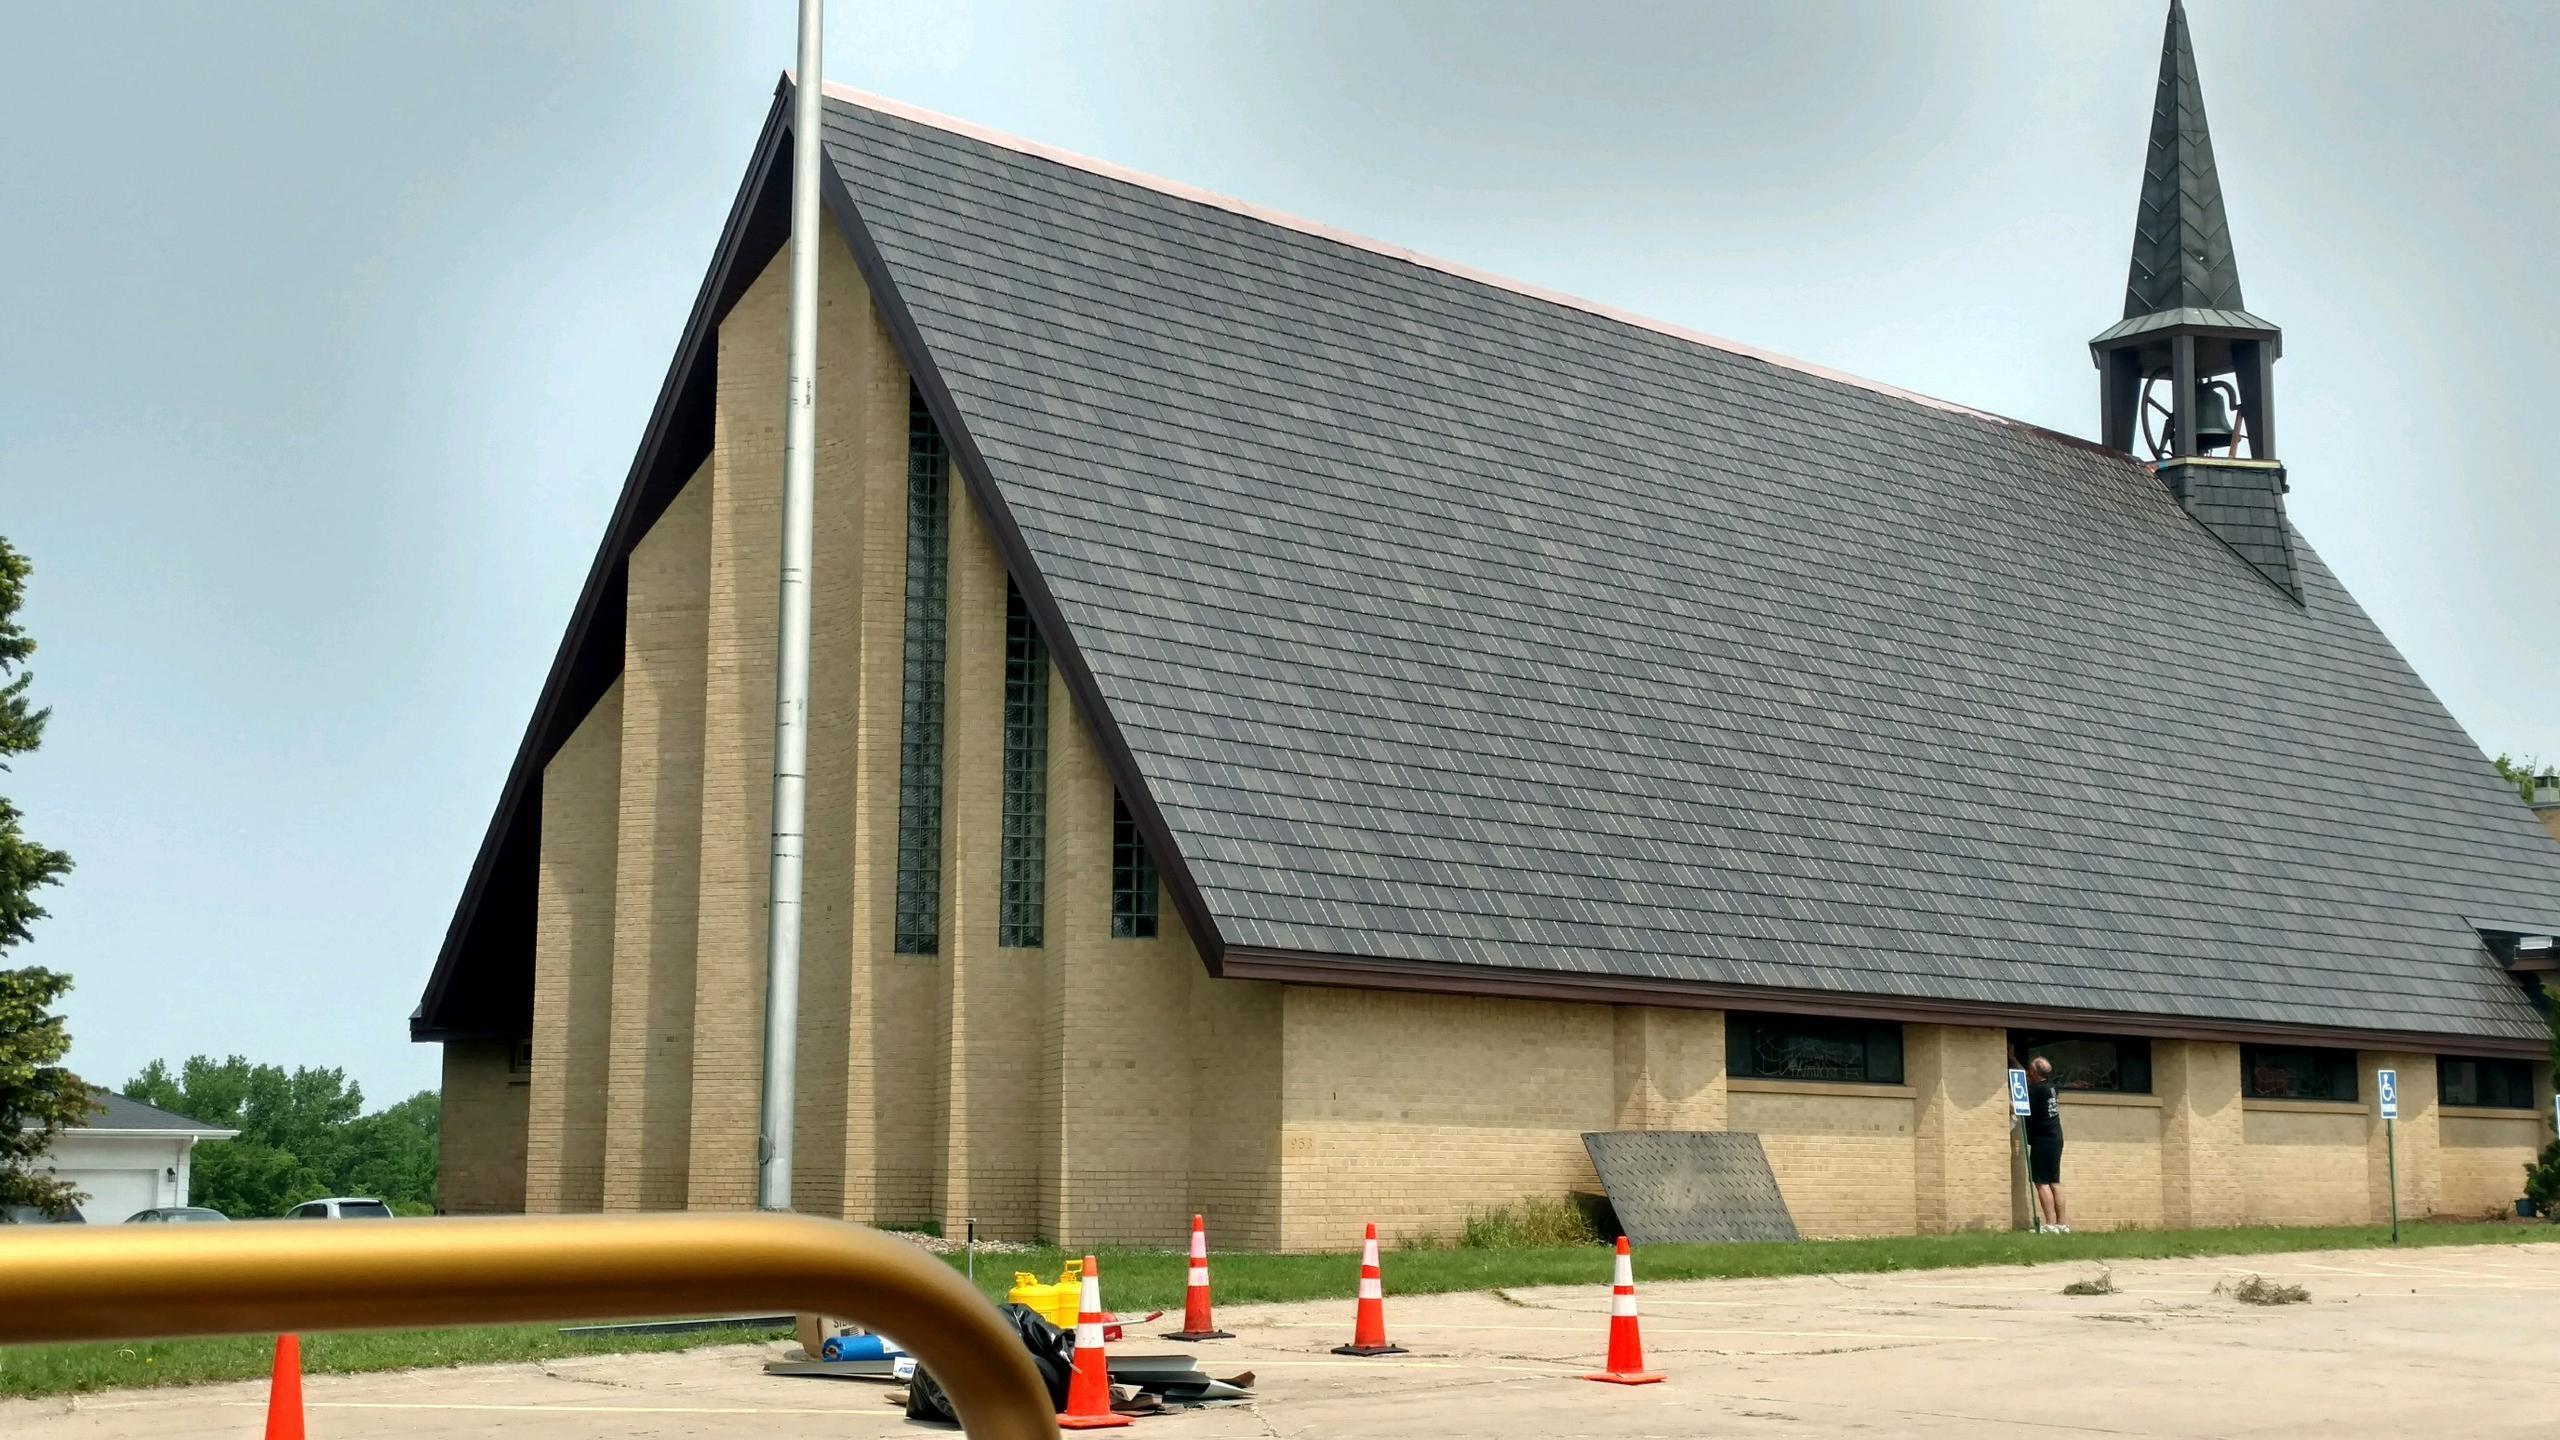 ArrowLine Shake Statuary Bronze Enhanced from EDCO was selected to replace an existing roof on this house of worship to protect it for years to come.